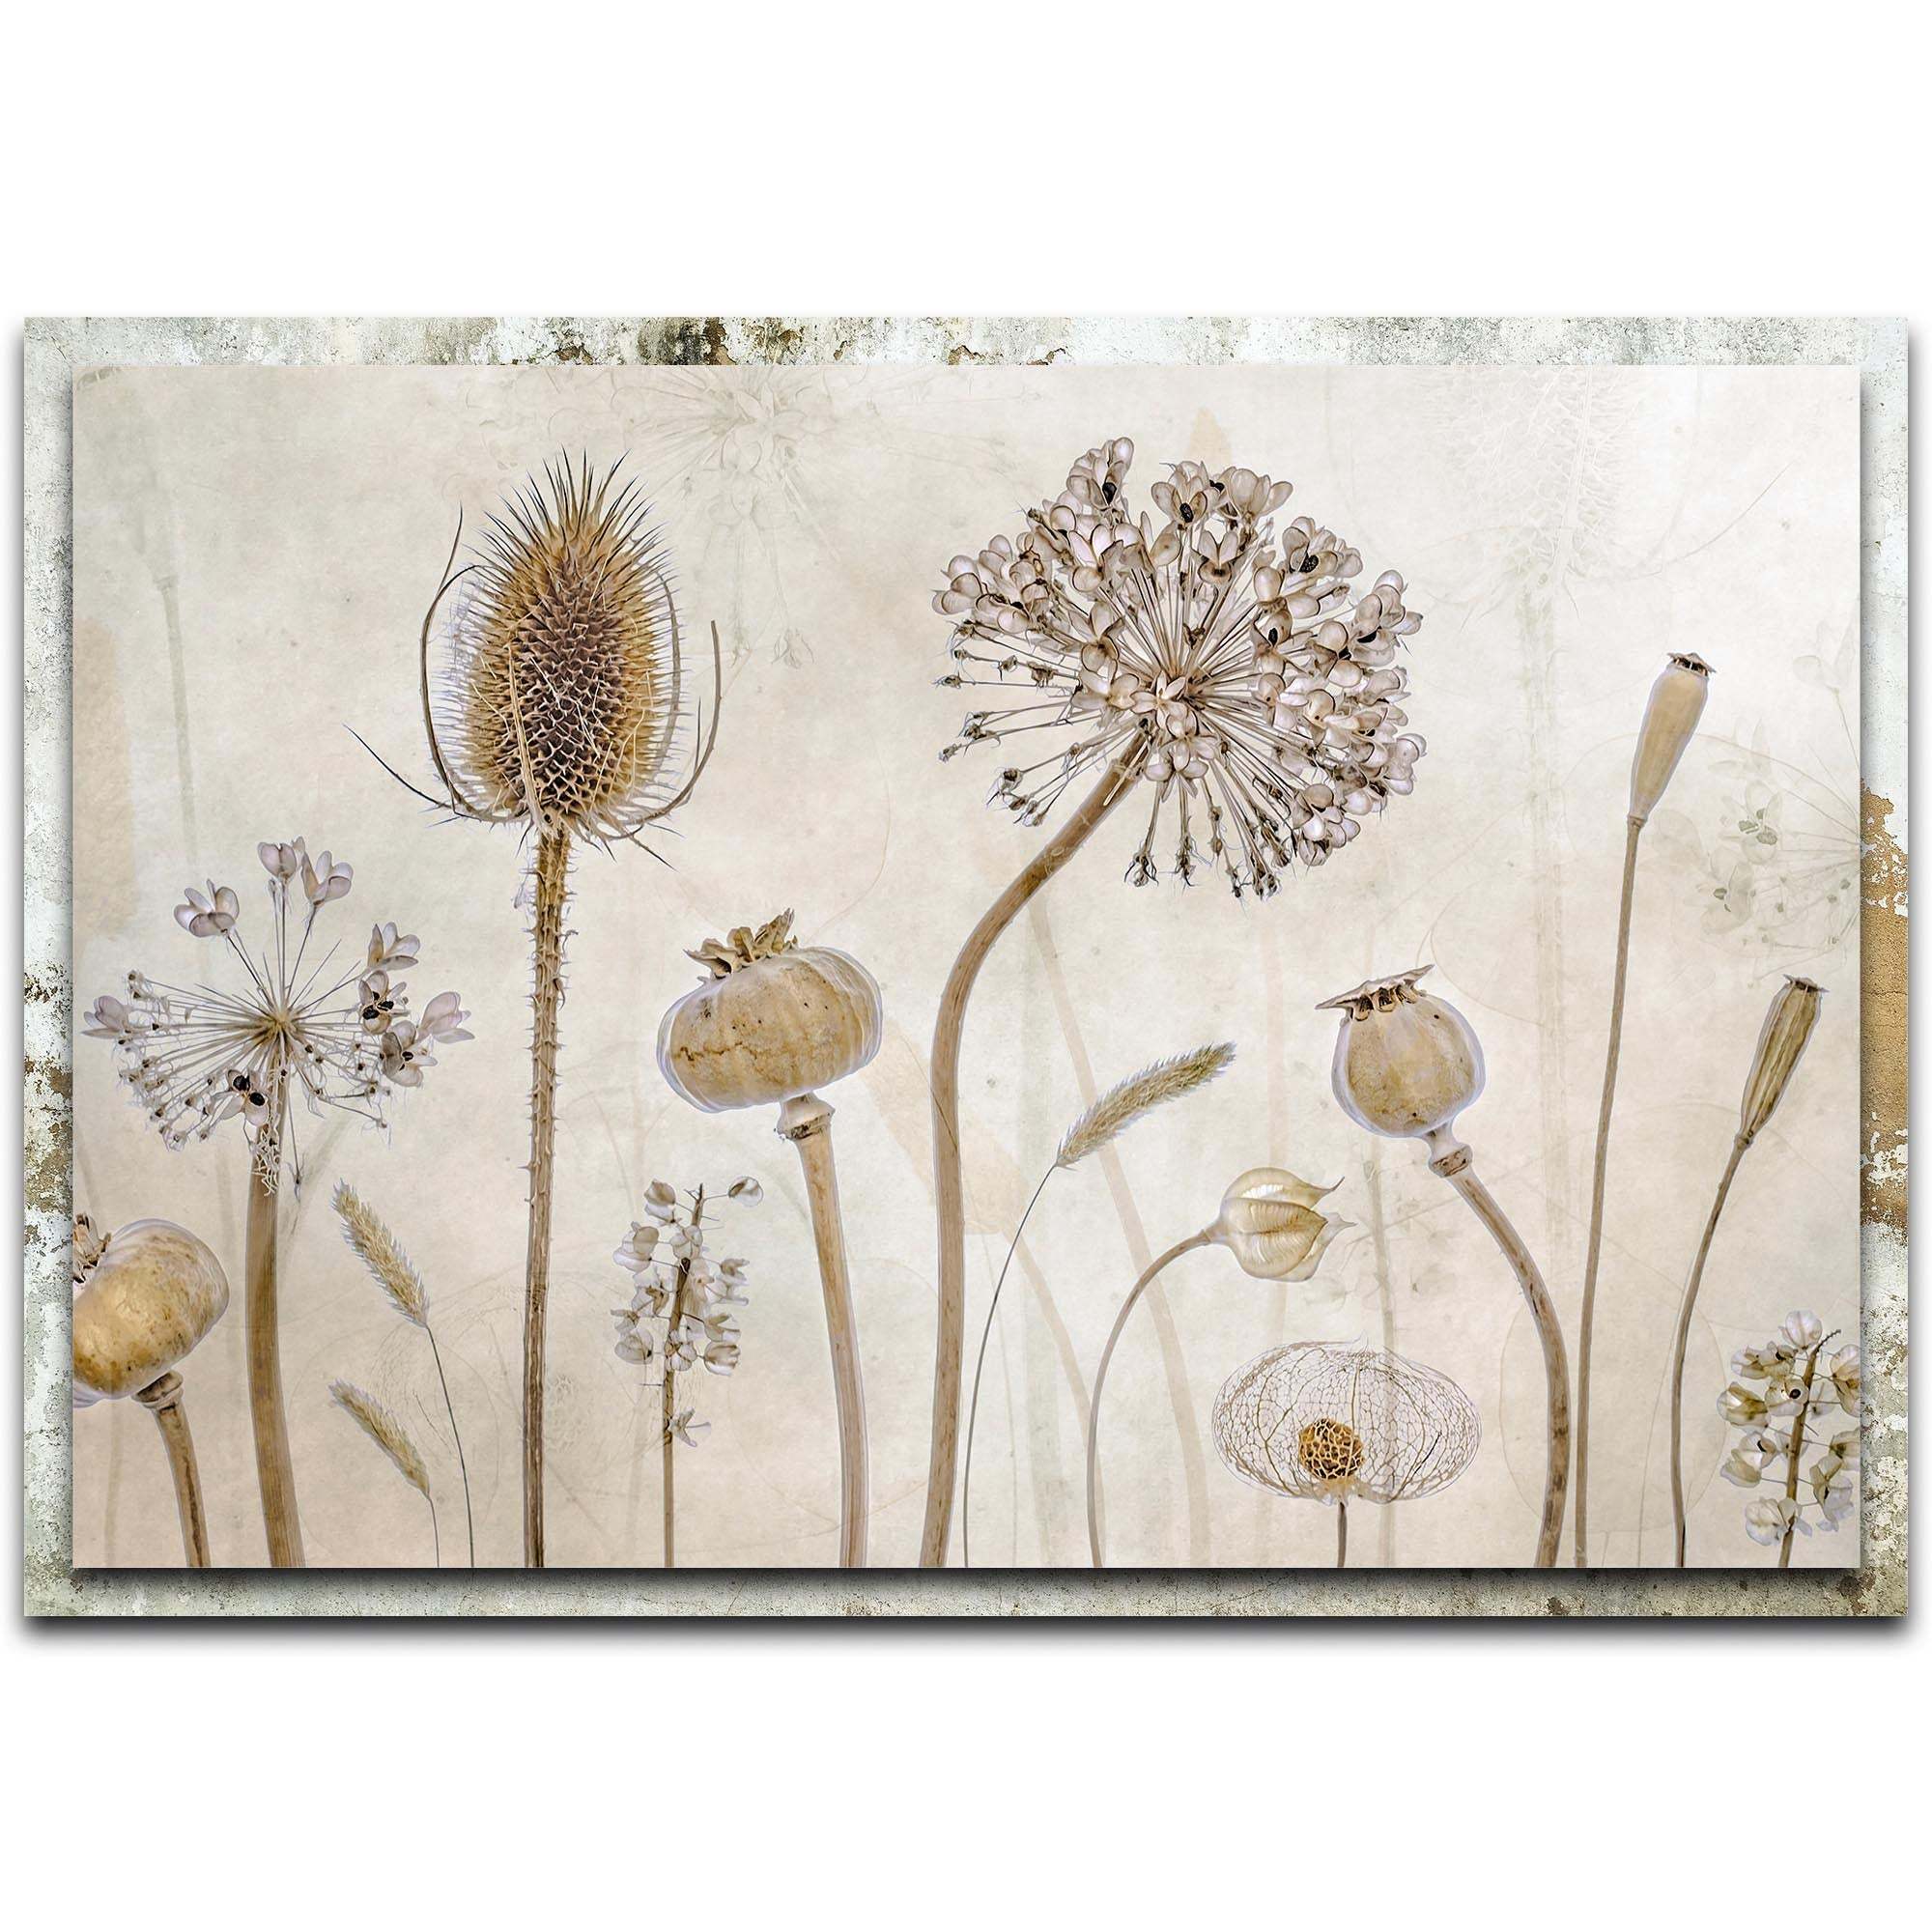 Growing Old by Mandy Disher - Modern Farmhouse Floral on Metal